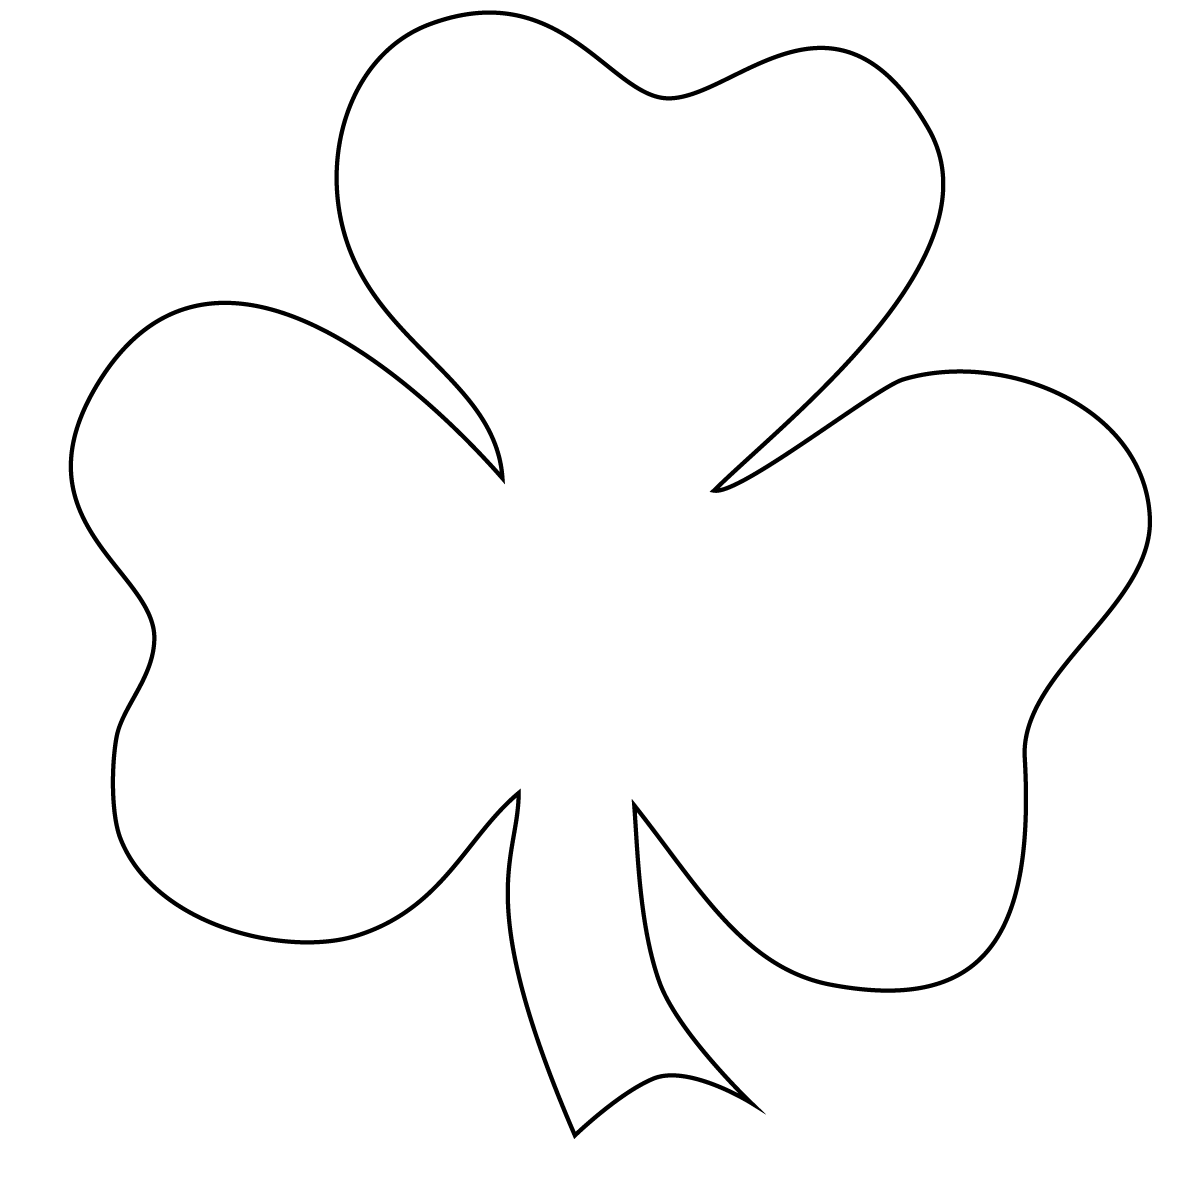 Nifty image intended for printable shamrock templates